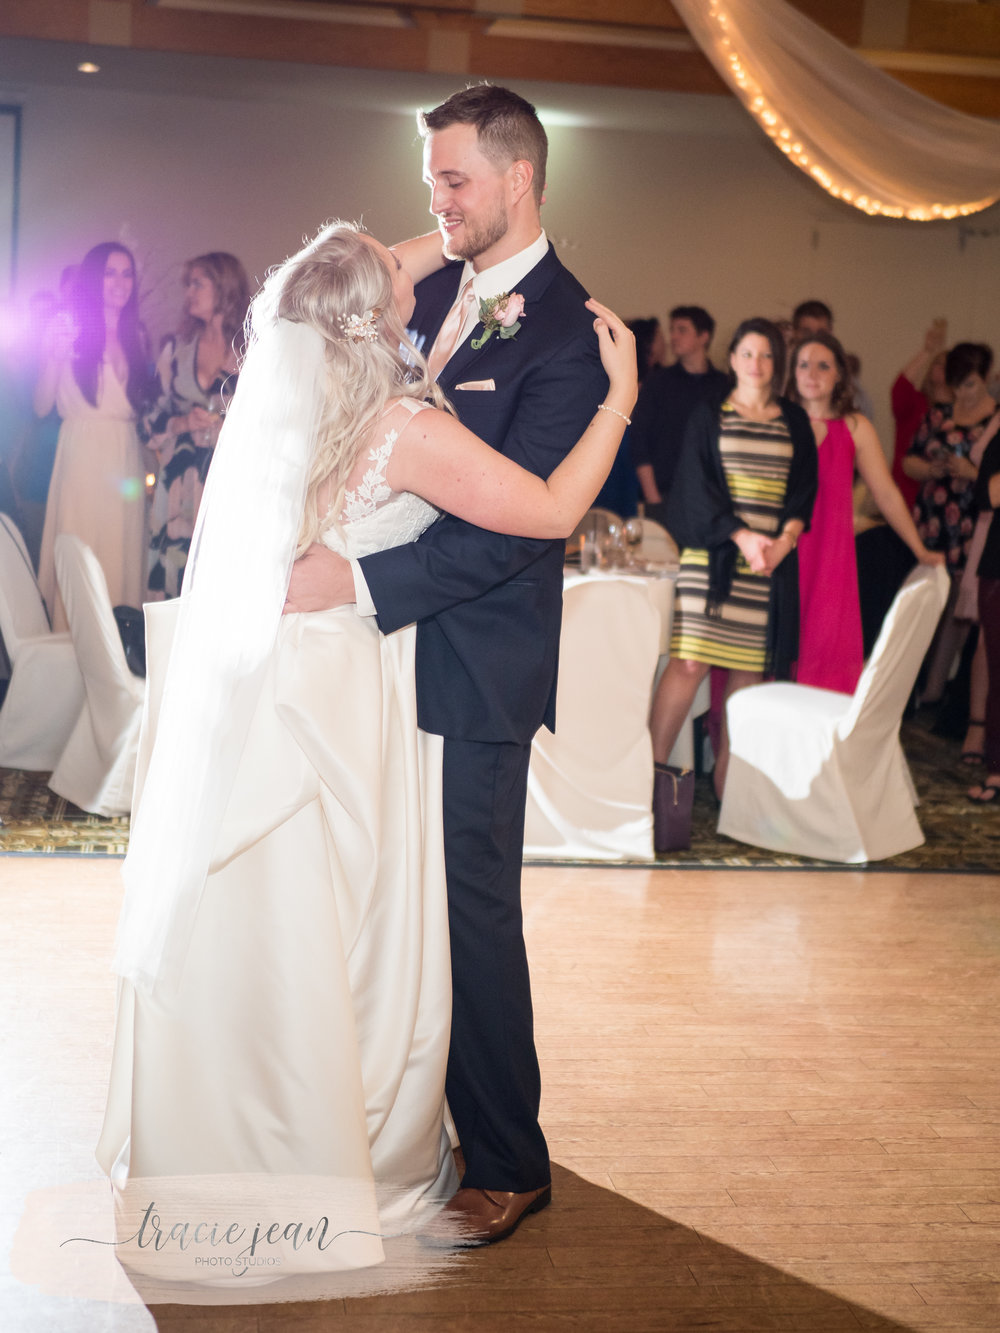 First Dance as Husband & Wife